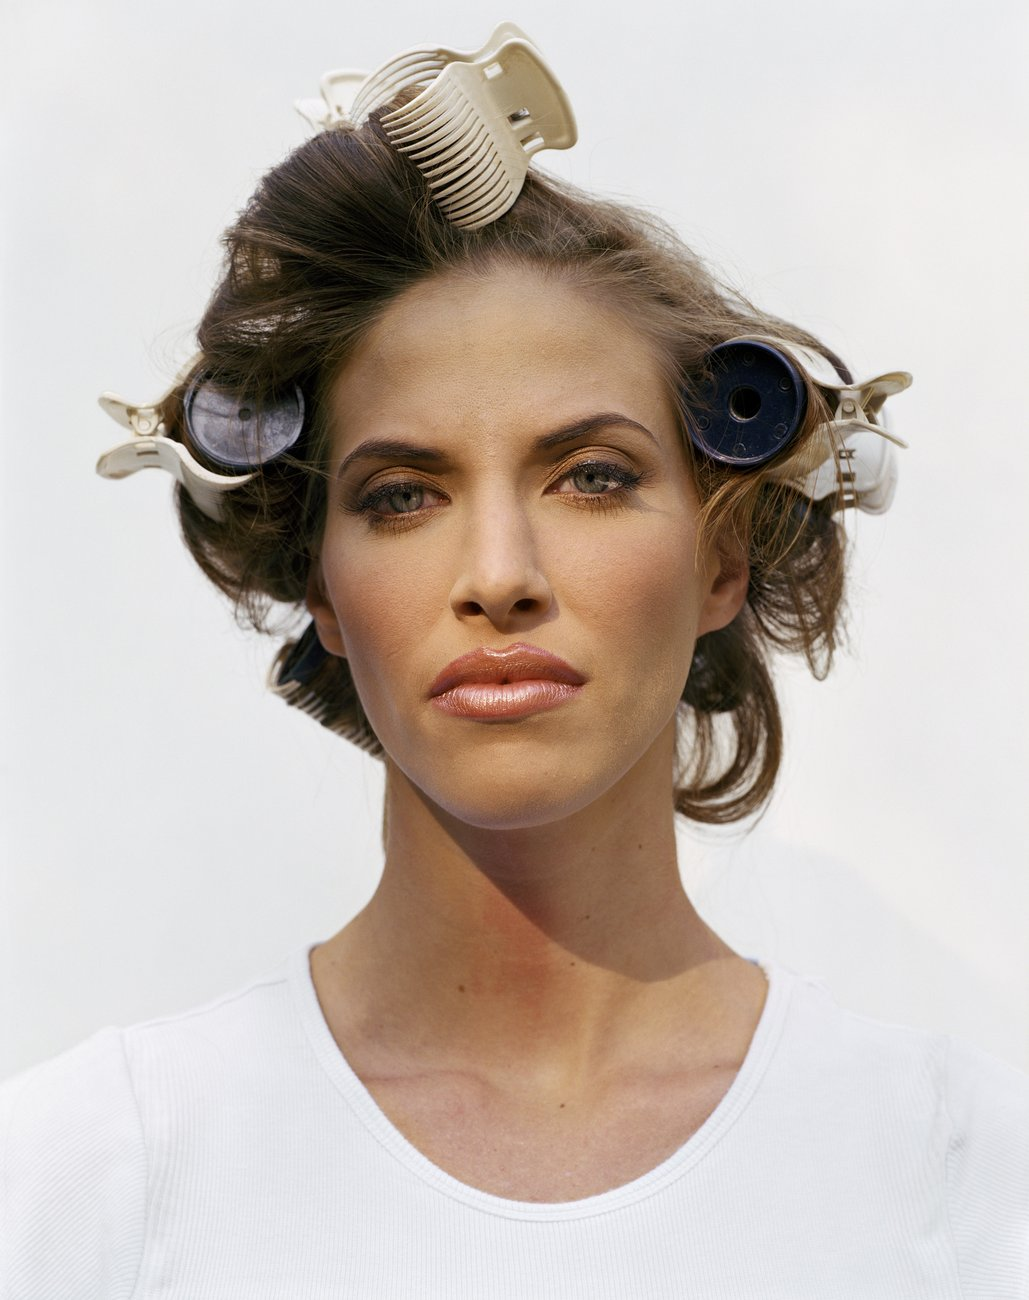 Artwork image, Larry Sultan, Woman in Curlers